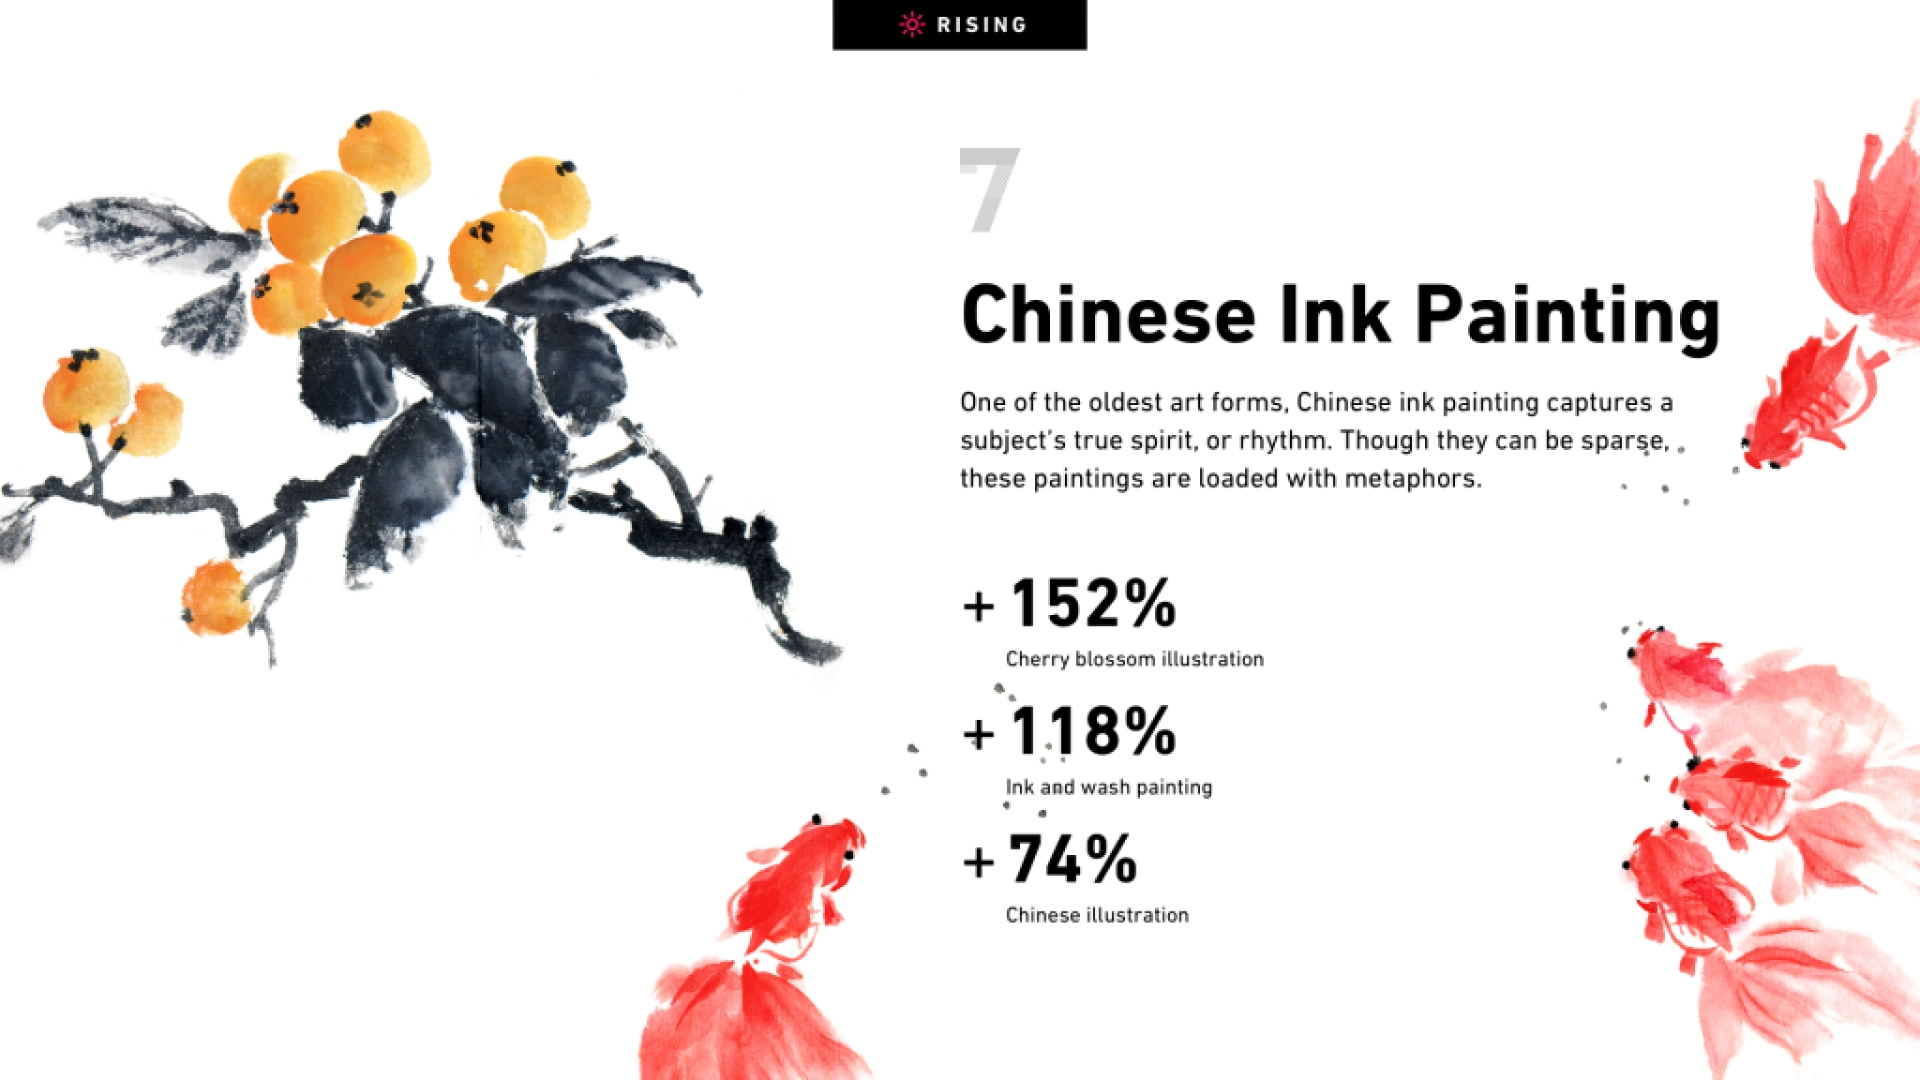 Chinese Ink Painting slide from Shutterstock's Creative Trends Report